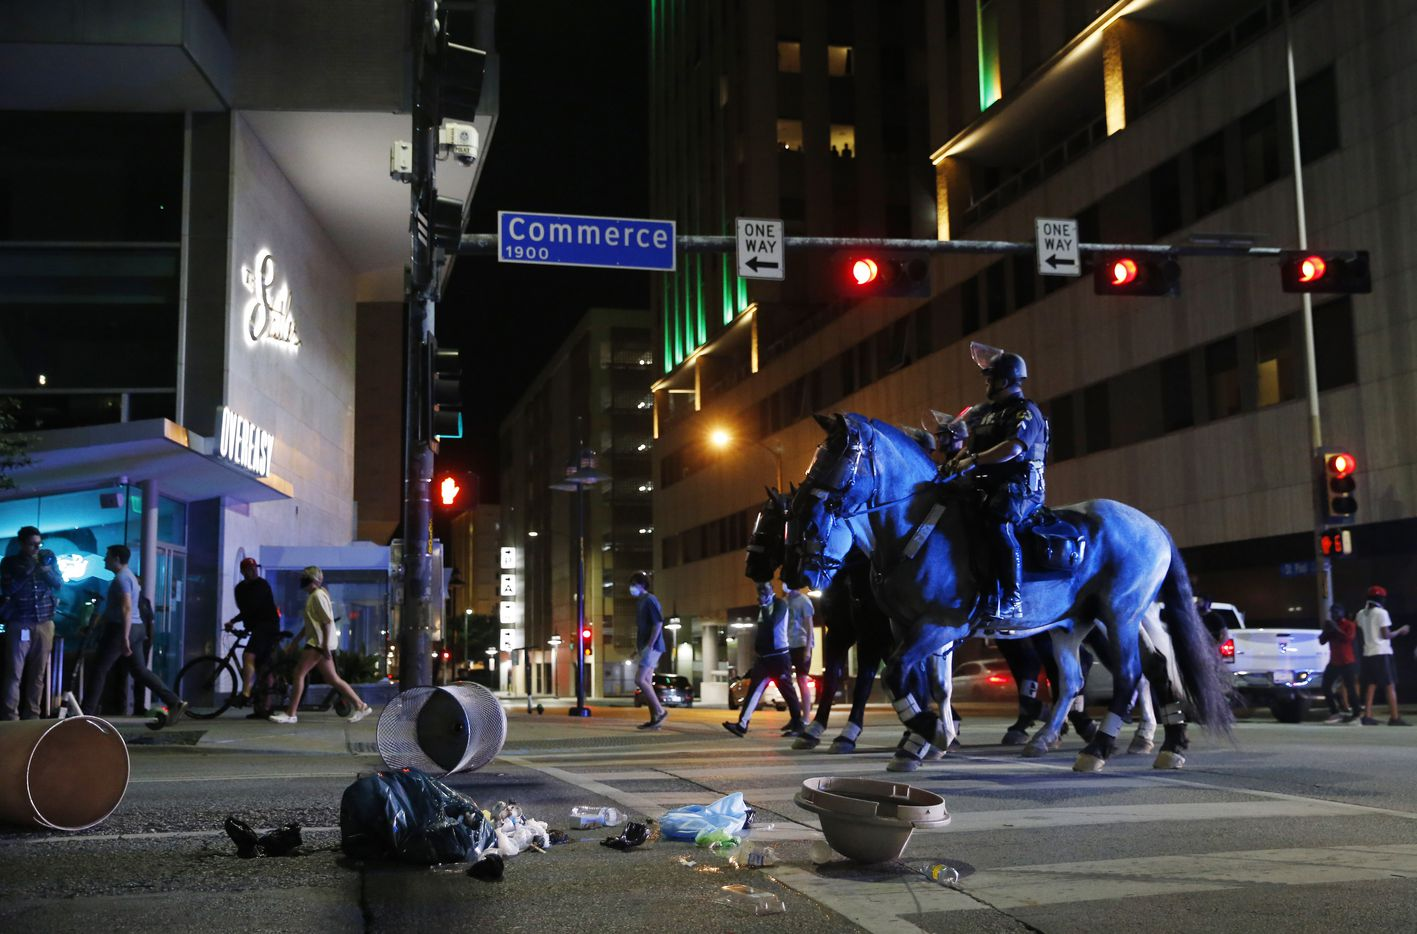 Dallas police make their way along Commerce amongst debris put in the street by protestors during a march against police brutality in downtown Dallas, on Friday, May 29, 2020. George Floyd died in police custody in Minneapolis on May 25.